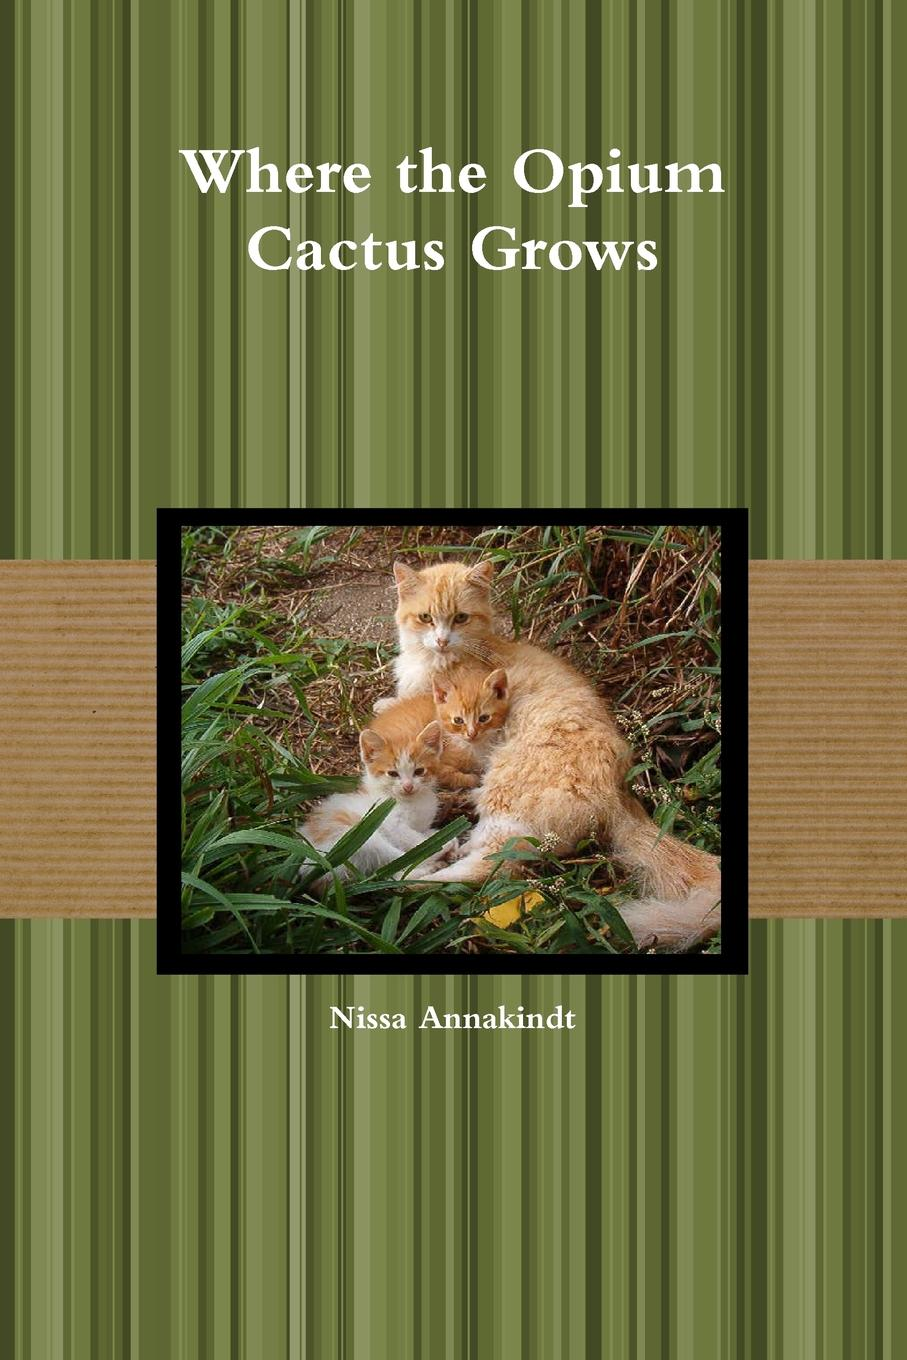 cat out of hell Nissa Annakindt Where the Opium Cactus Grows